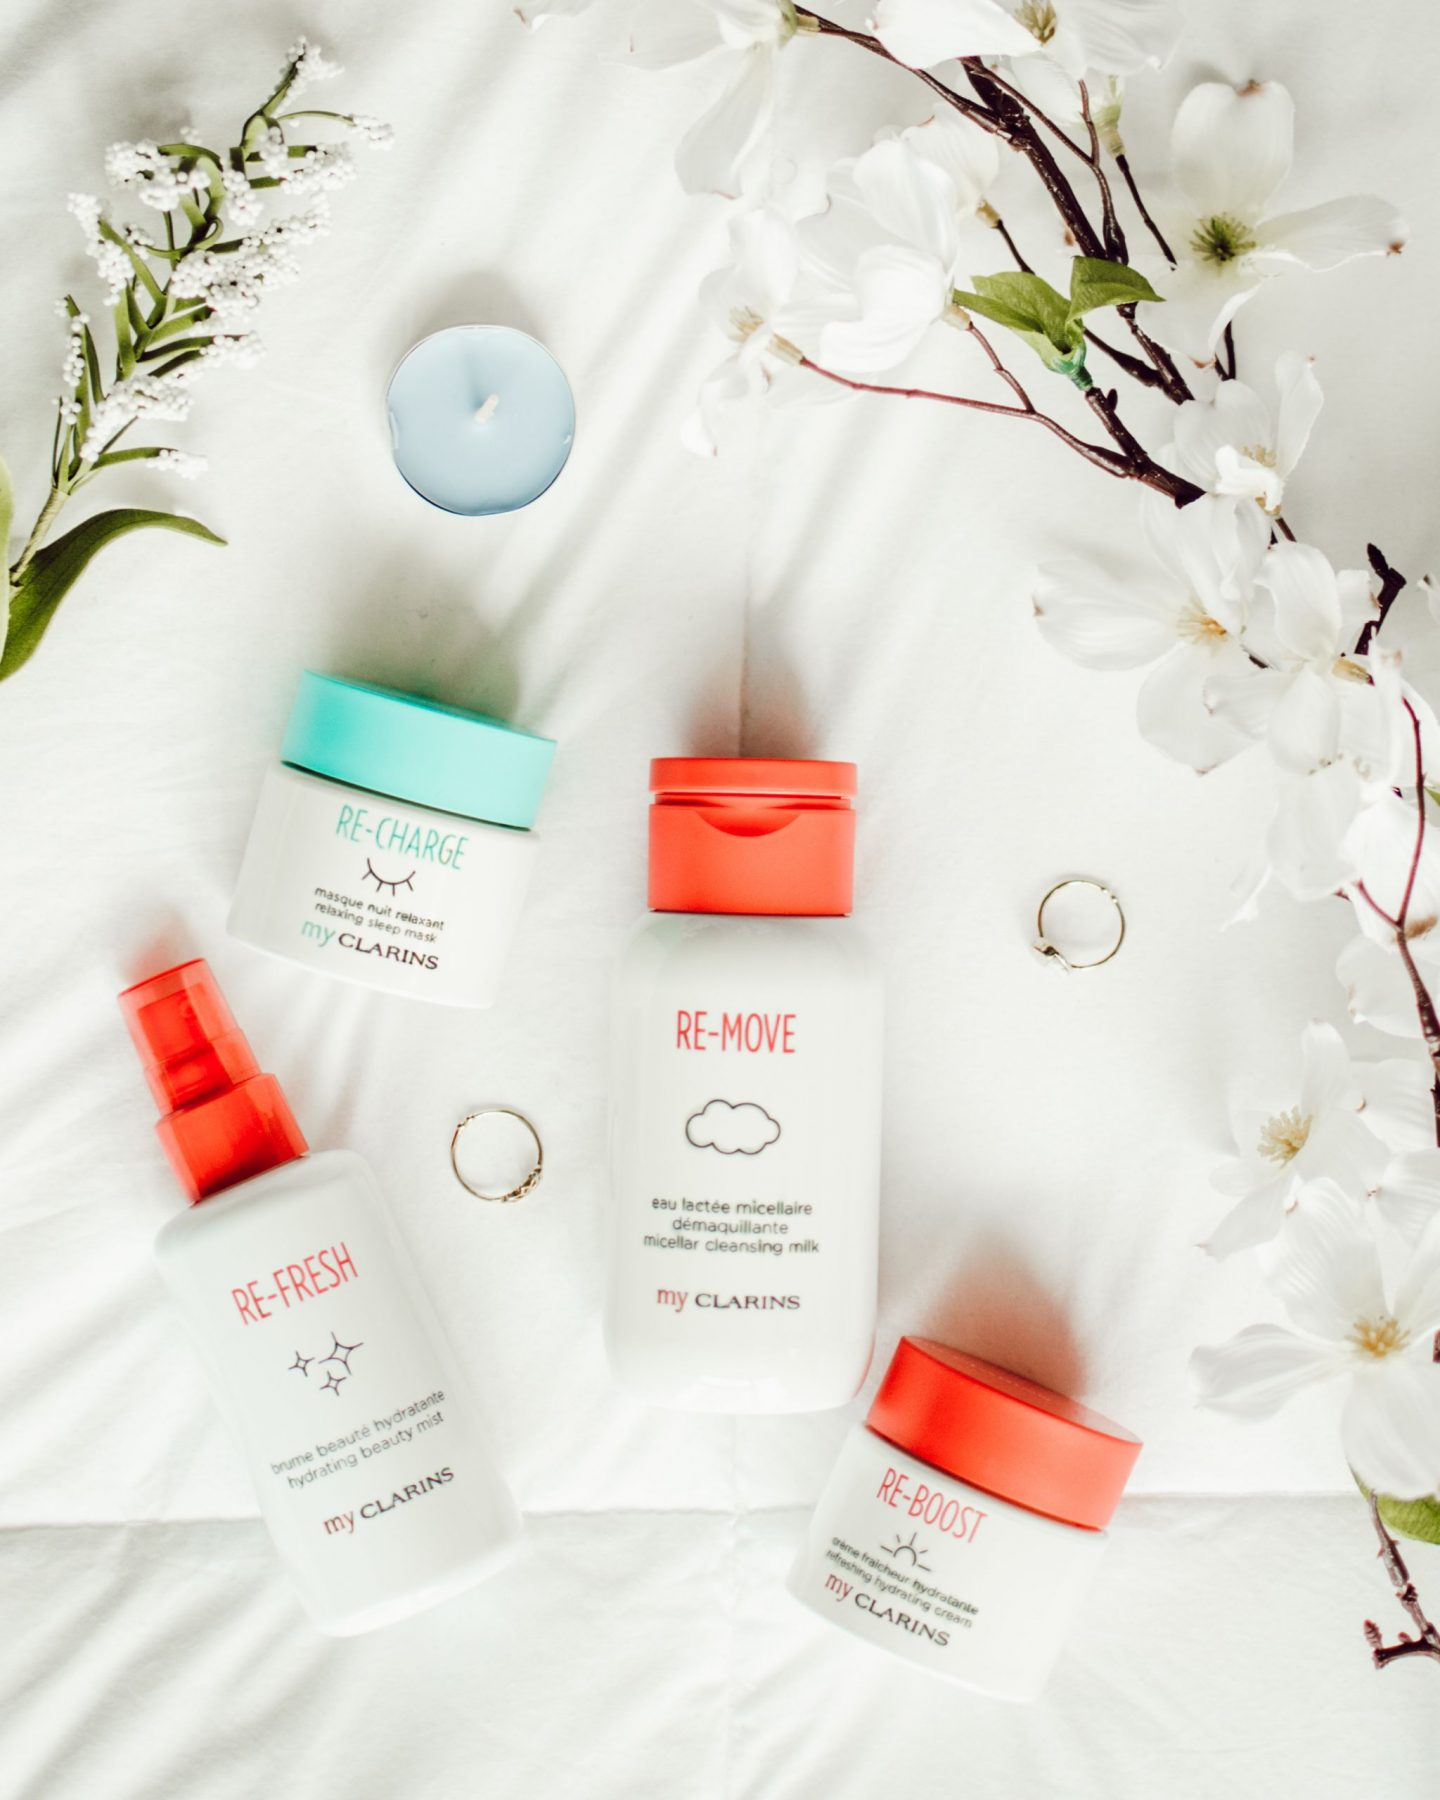 Skincare Routine with My Clarins